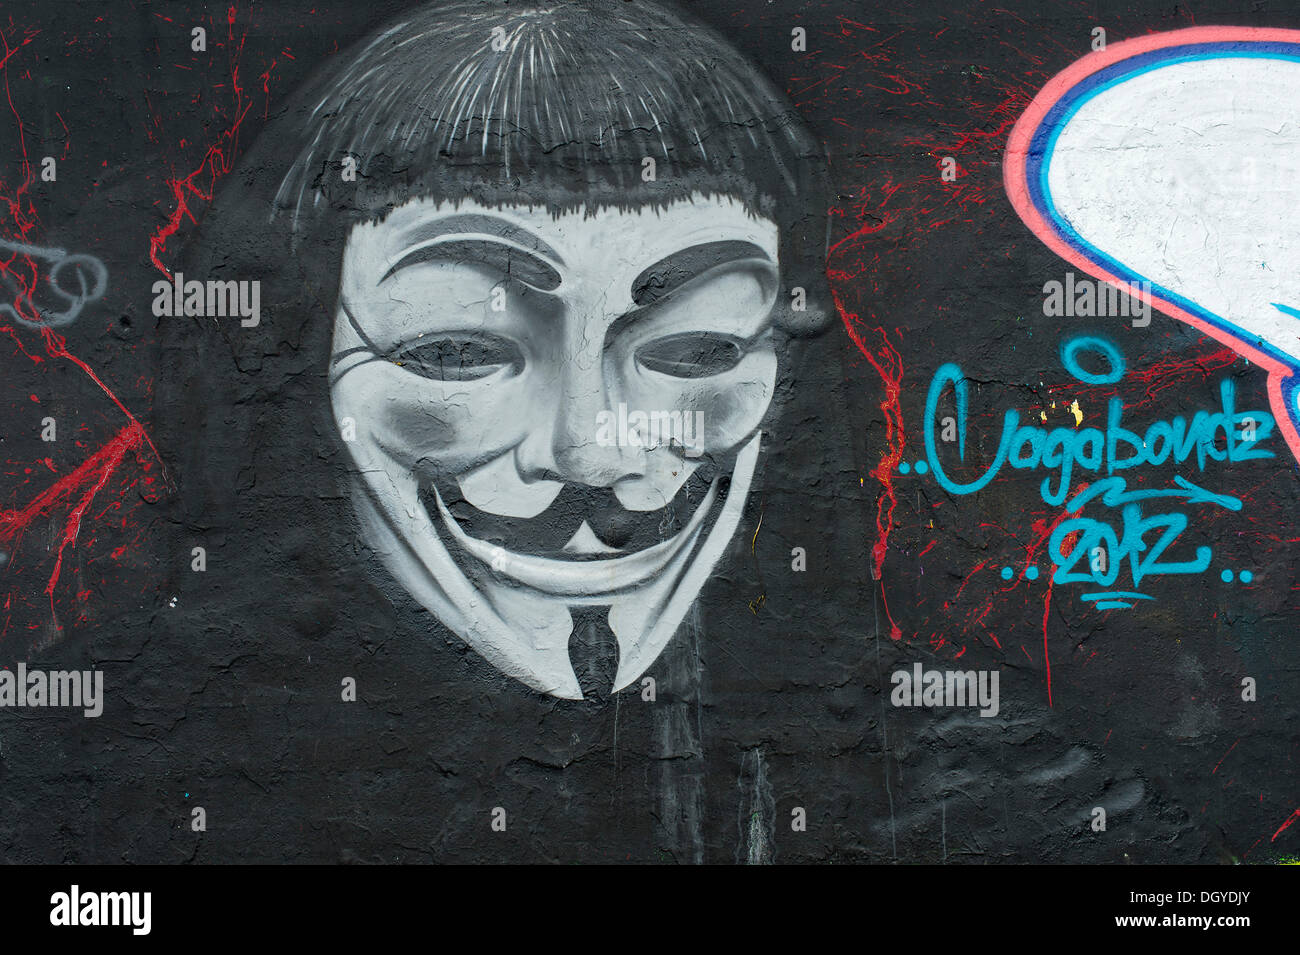 Graffiti of a man with an 'Anonymous' or 'Guy Fawkes' mask, symbol of the 'Occupy' protest movement against the power of the - Stock Image